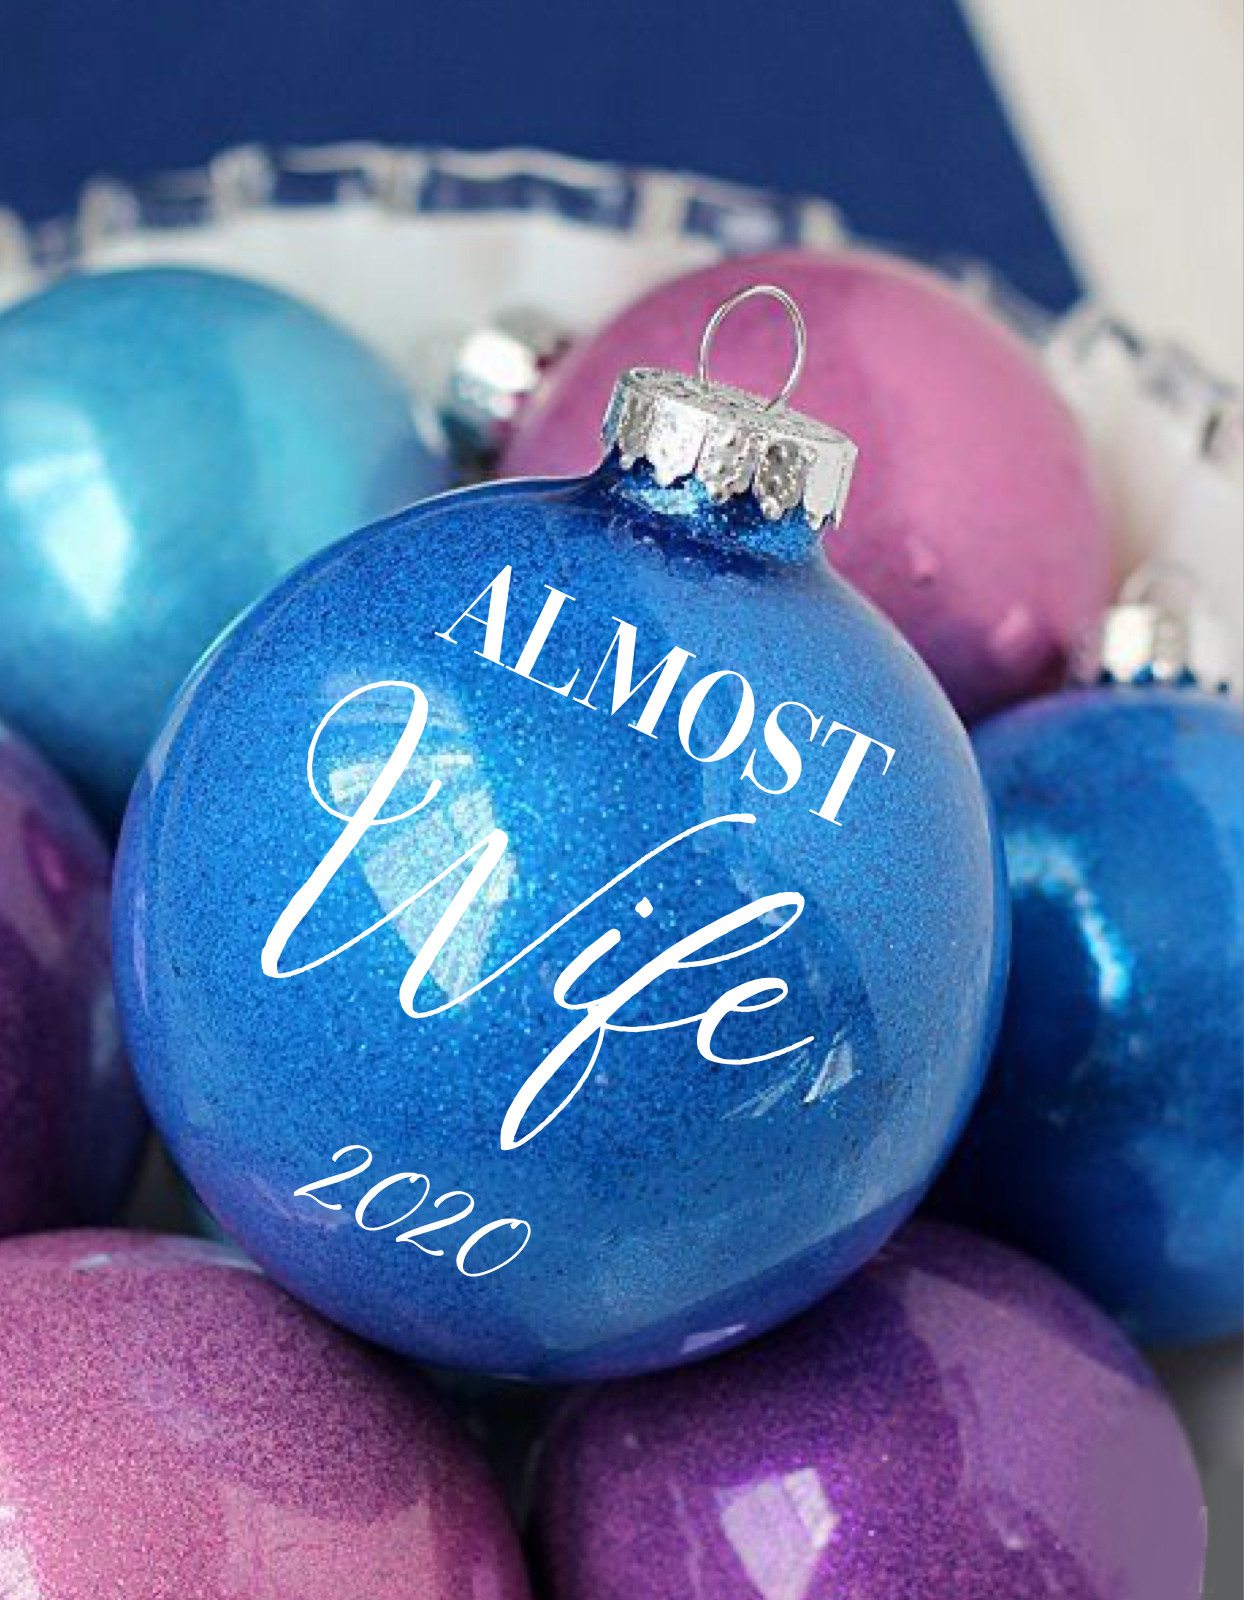 Almost Wife 2020 Glitter Ornament